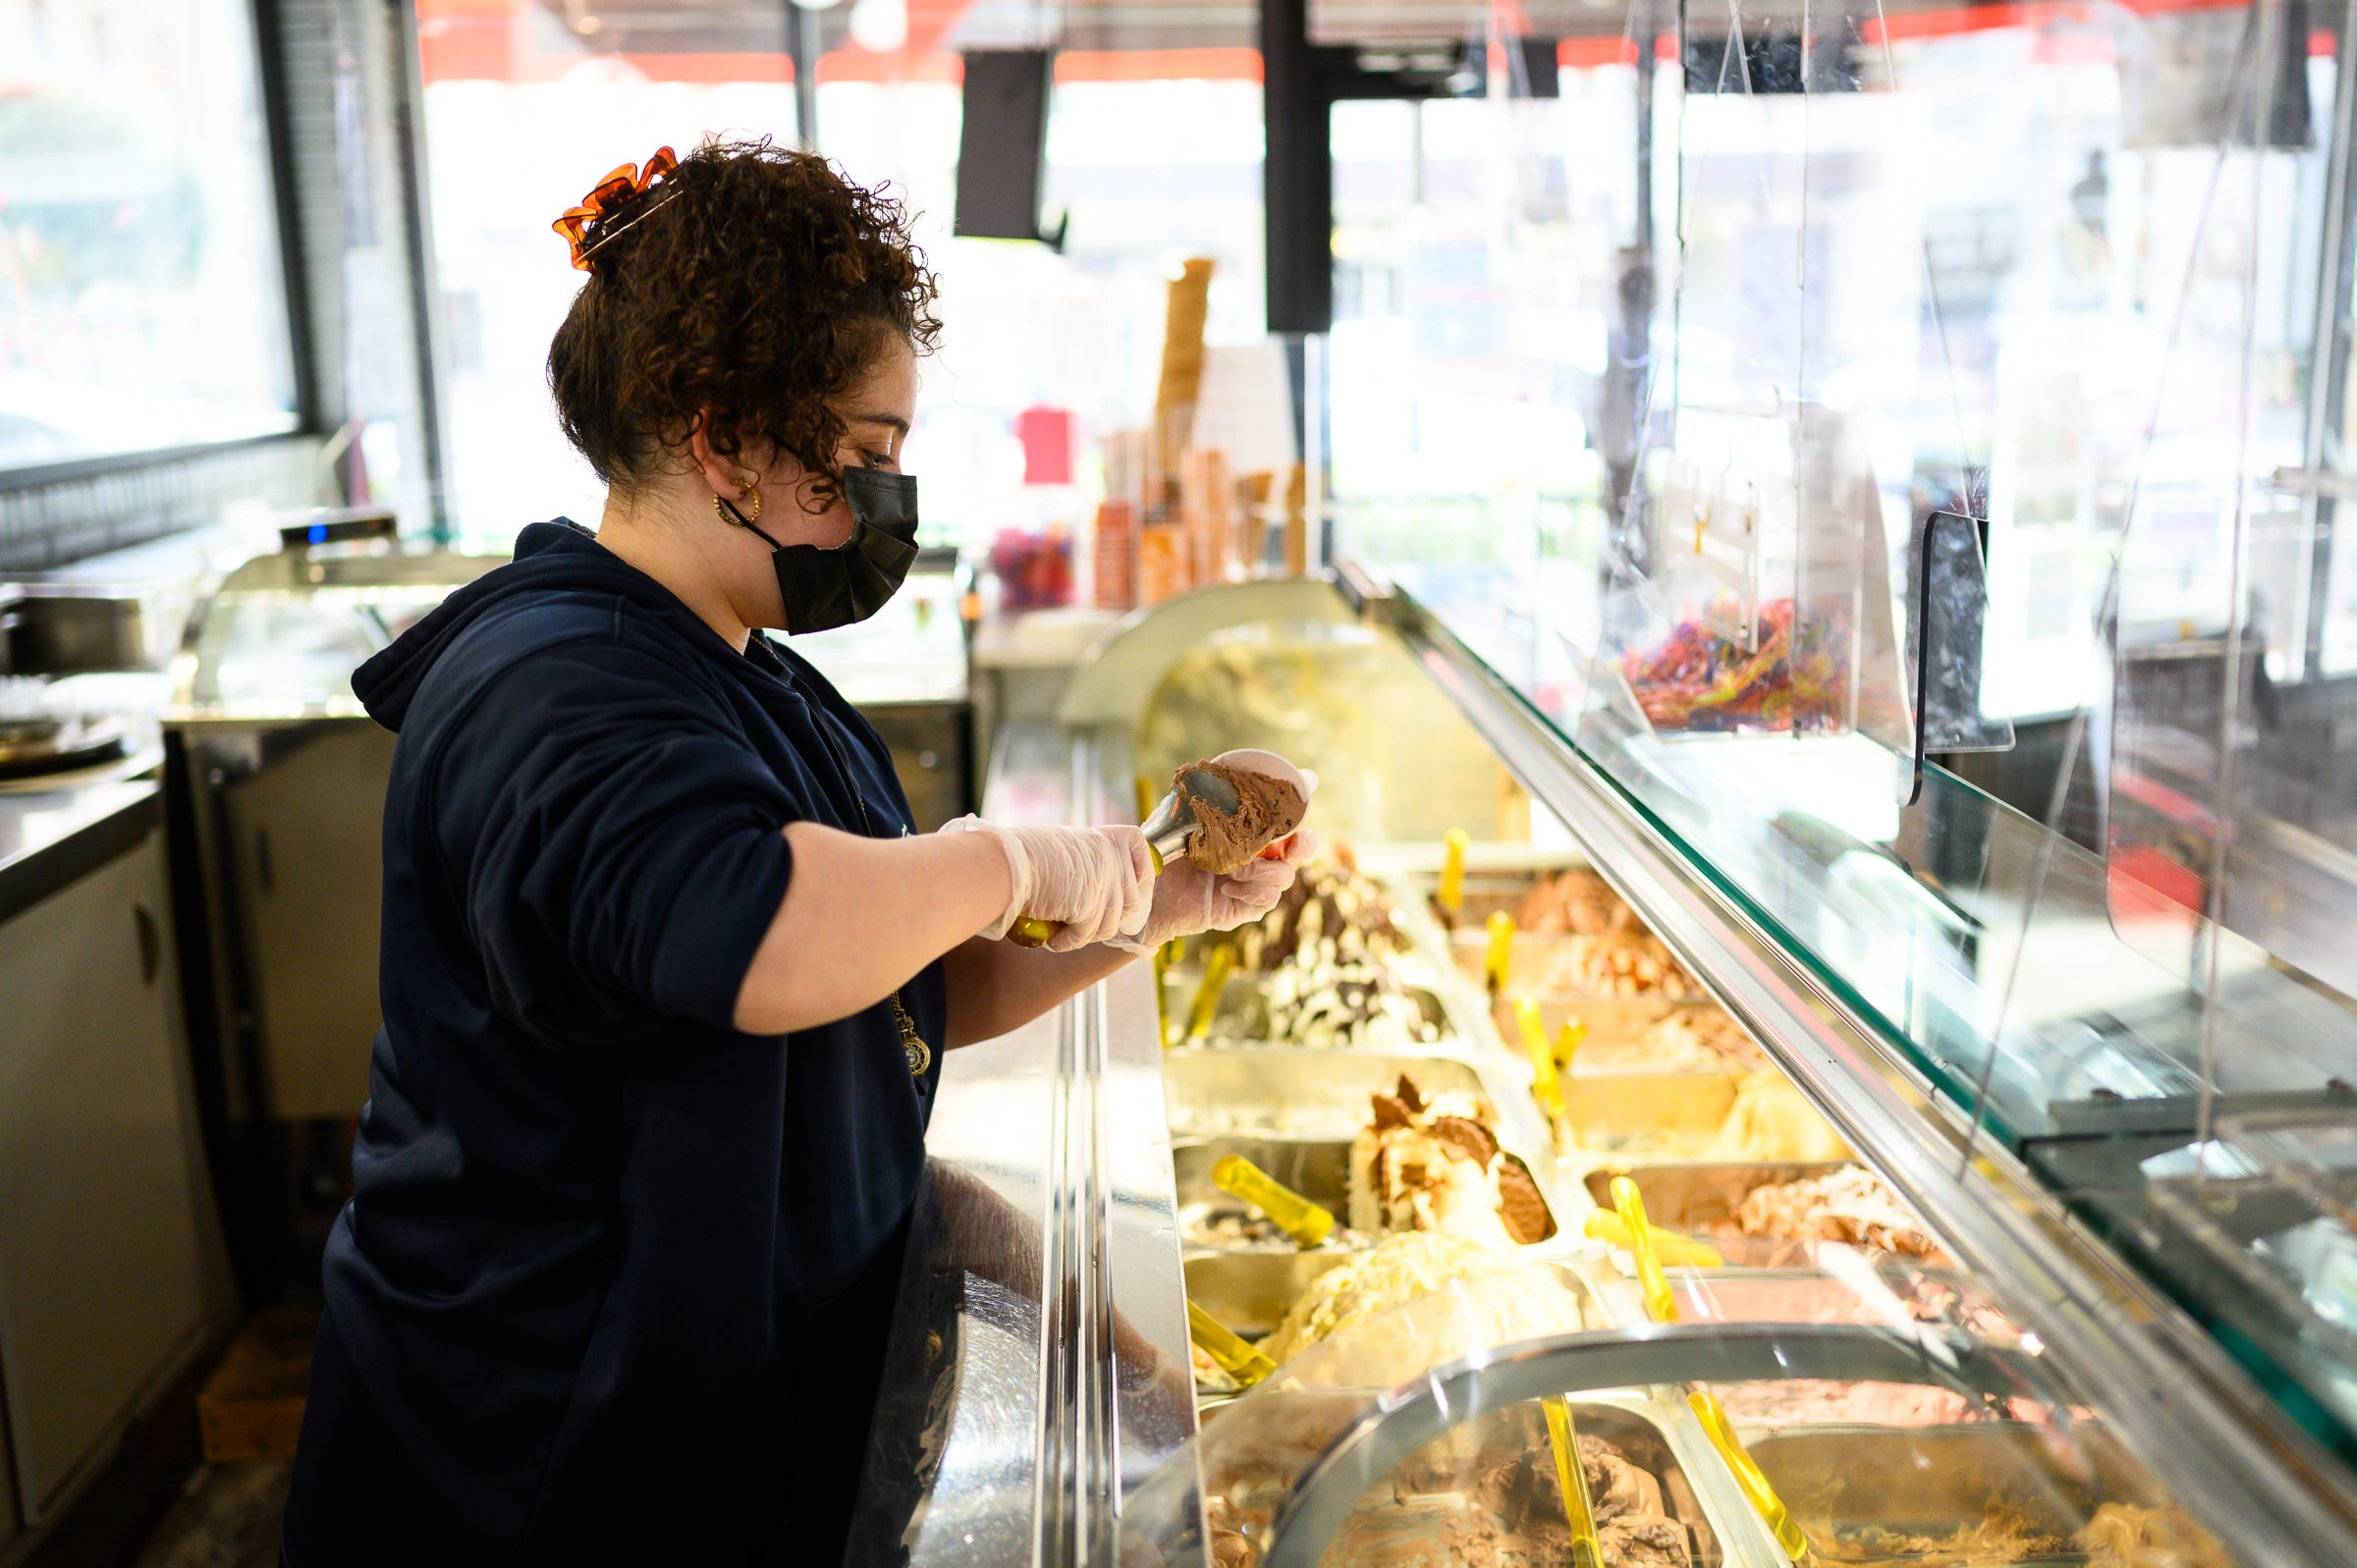 Mia Ortiz scoops a cup of gelato for her brother Luca at Luna Rosa Gelato Cafe downtown Thursday, March 11, 2021.